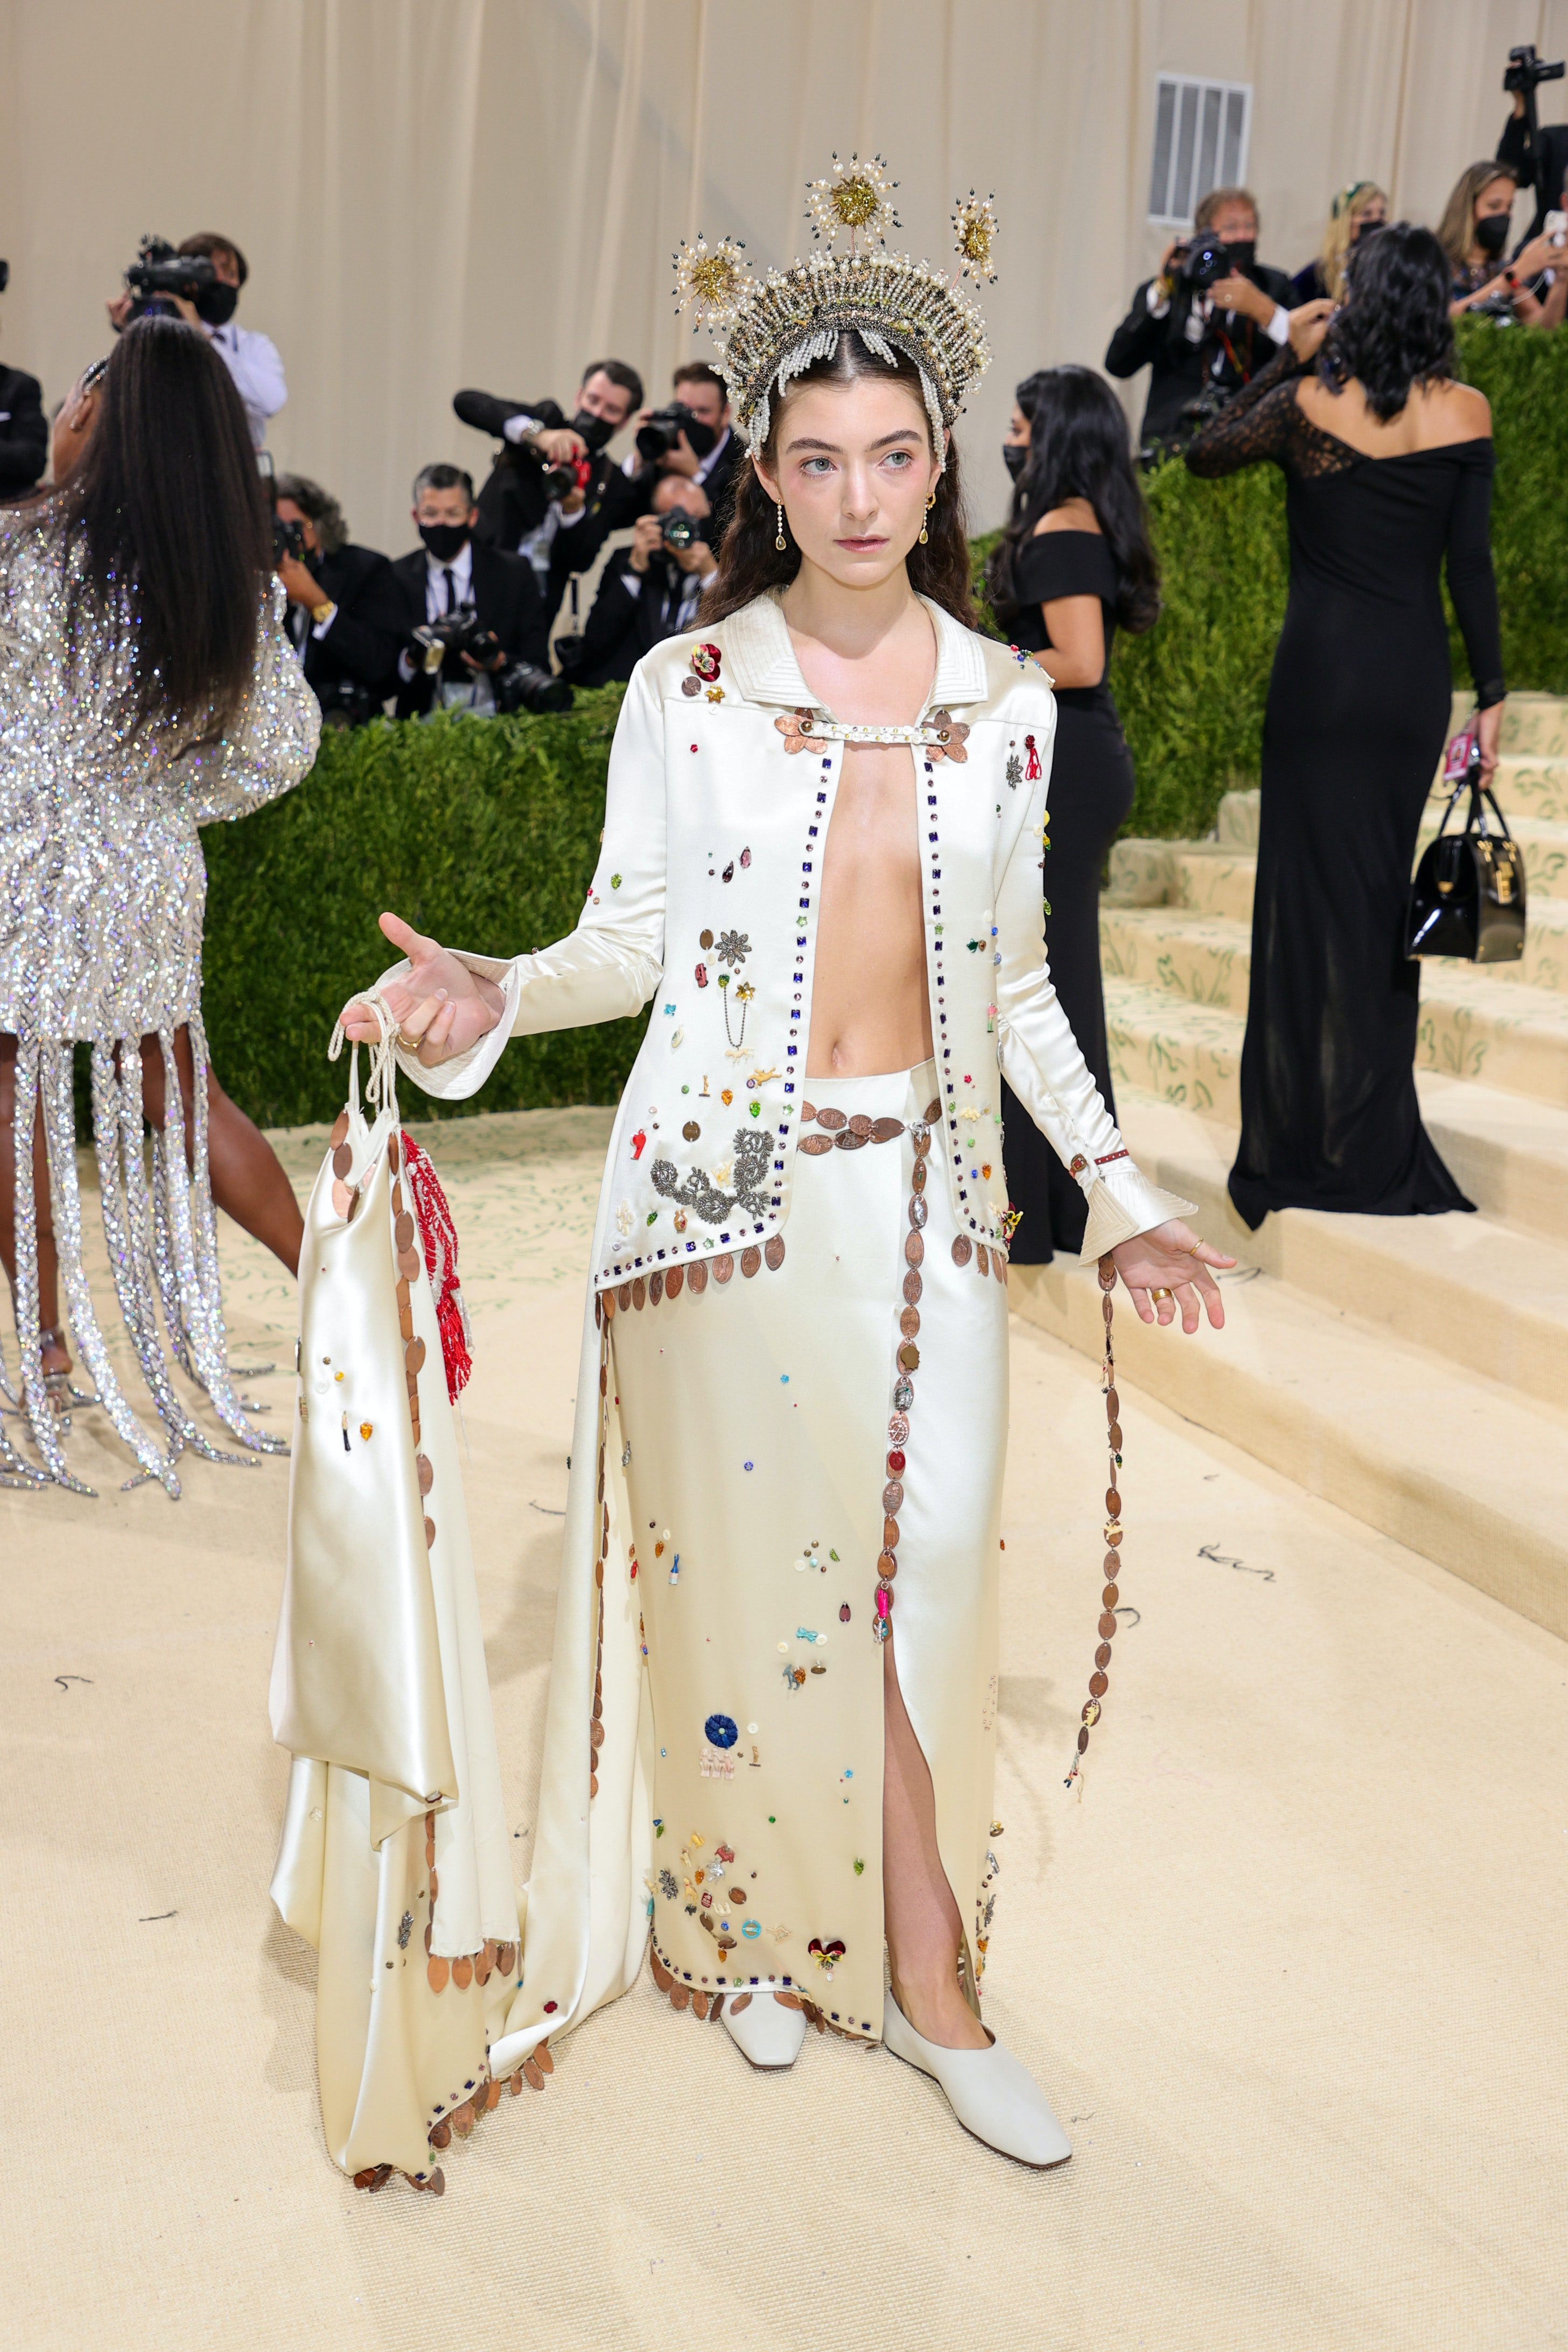 Lorde in Bode at 2021 Met Gala. Theo Wargo/Getty Images